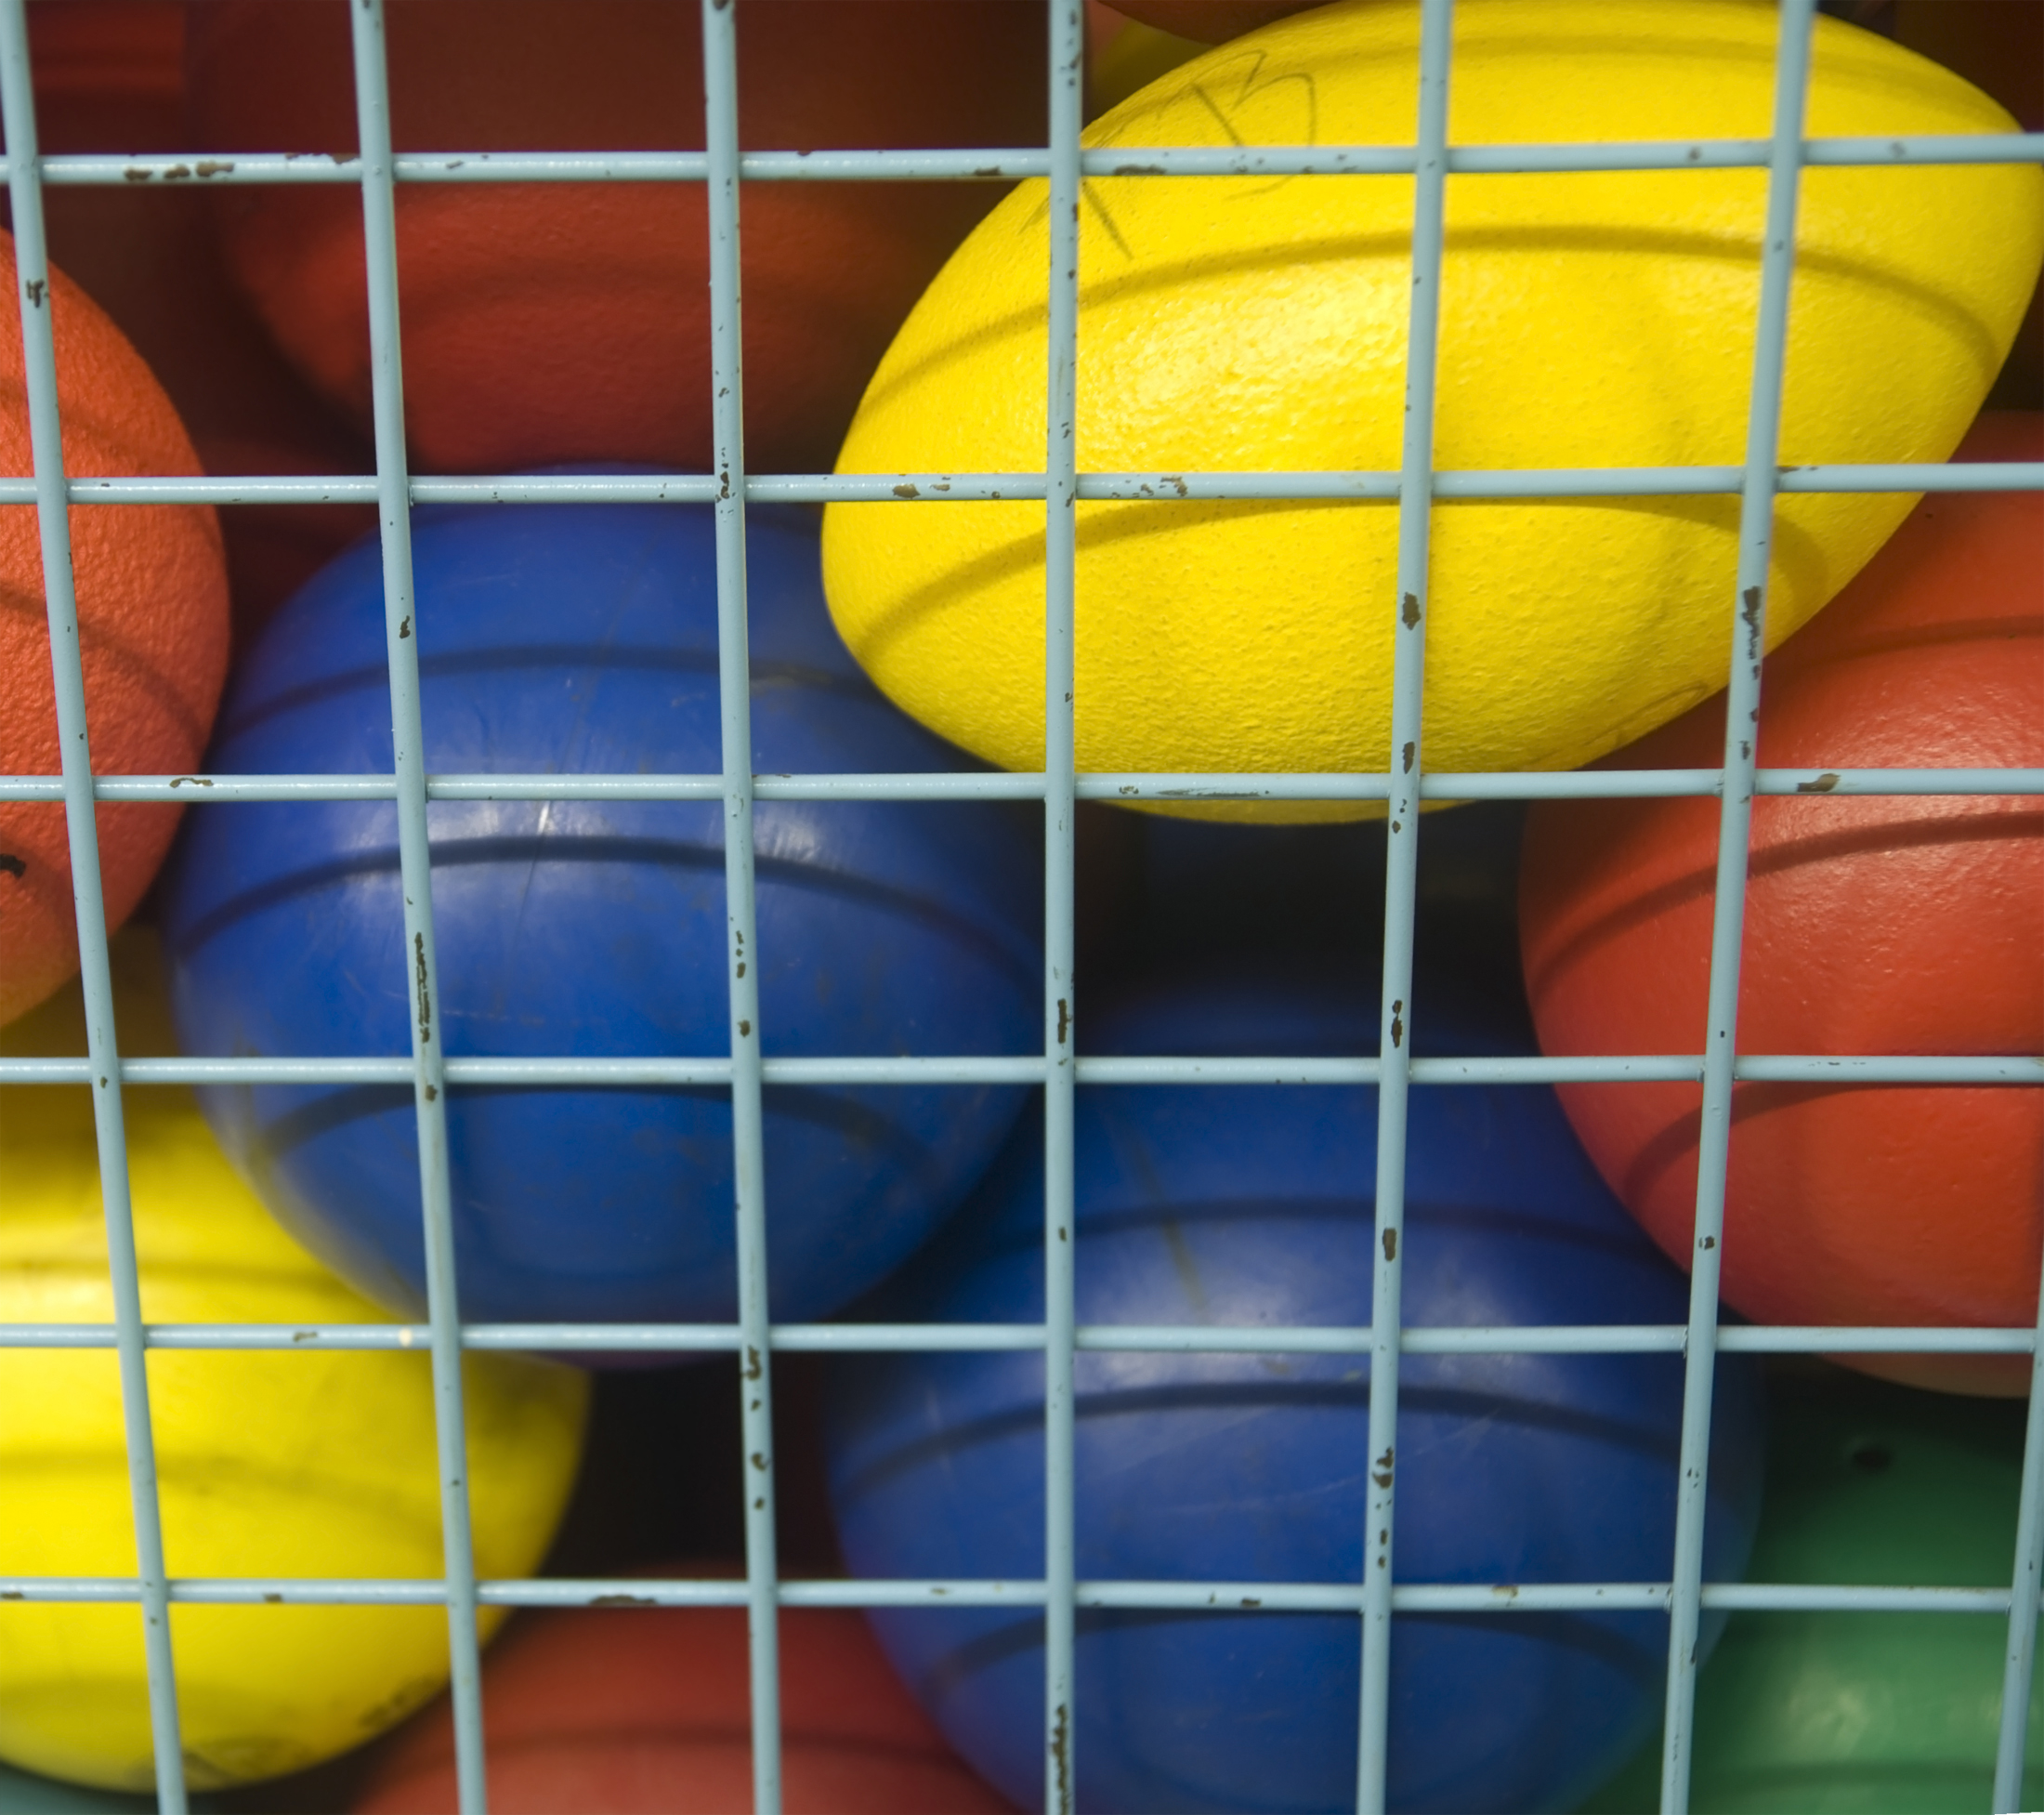 Image of colorful sports equipment.